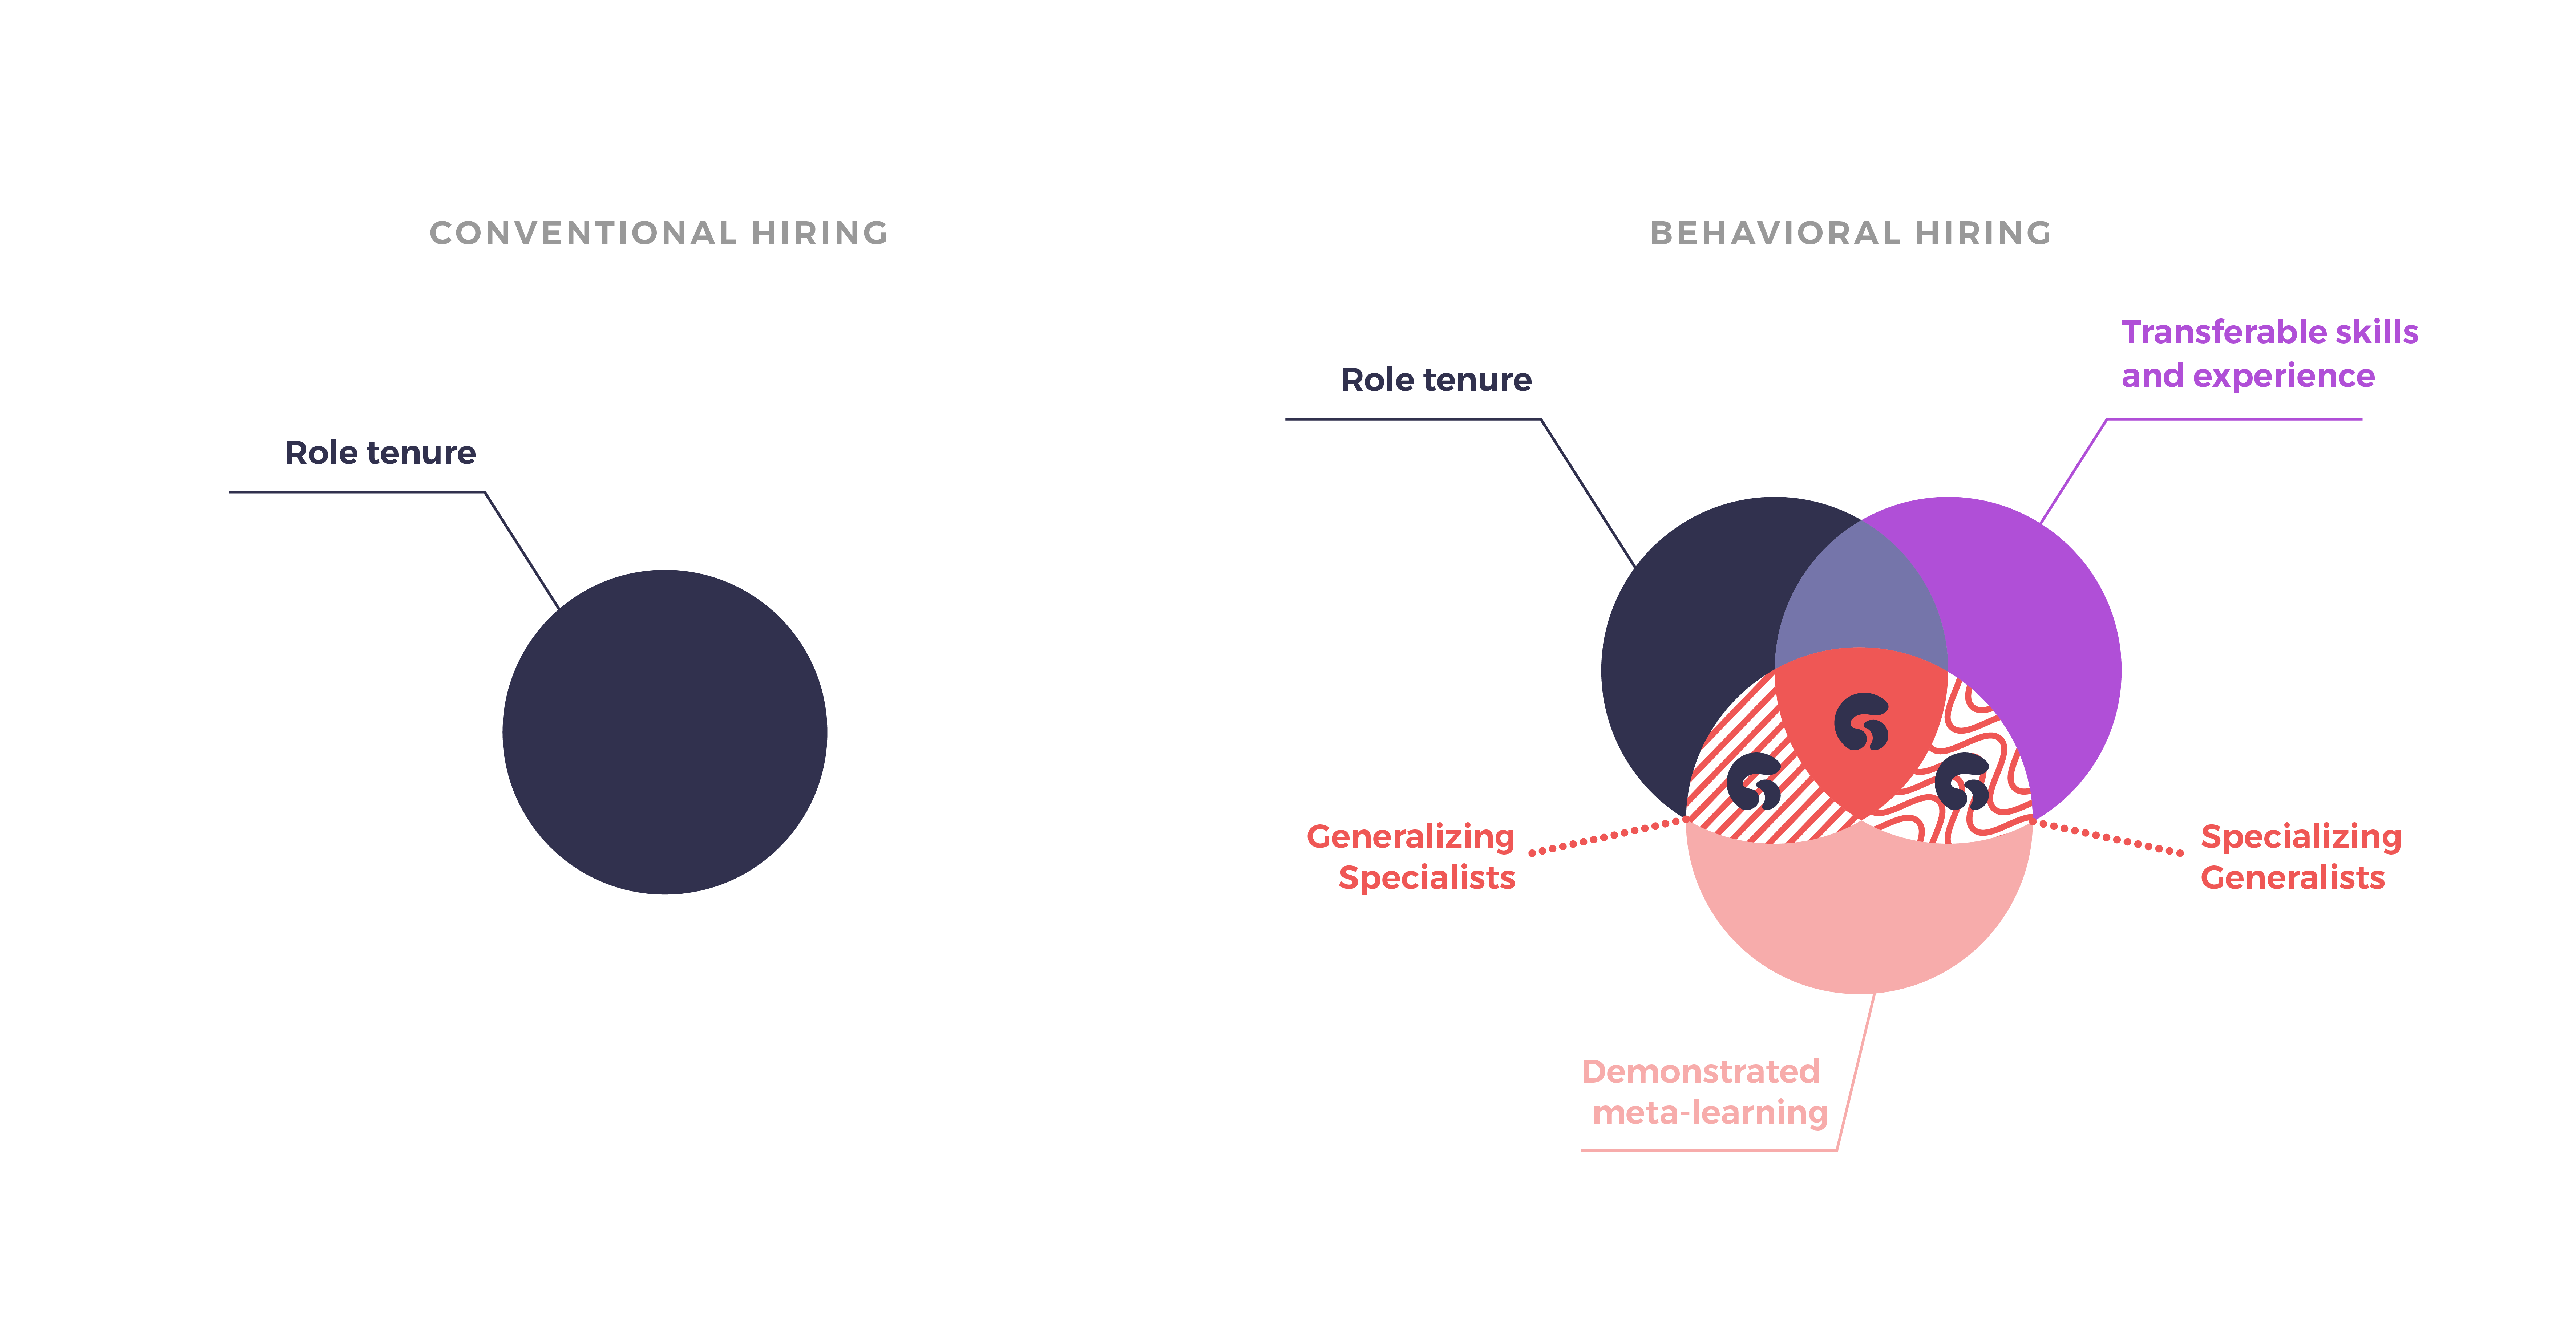 venn diagram comparison between conventional hiring and behavioral hiring showing a more nuanced picture for behavioral hiring